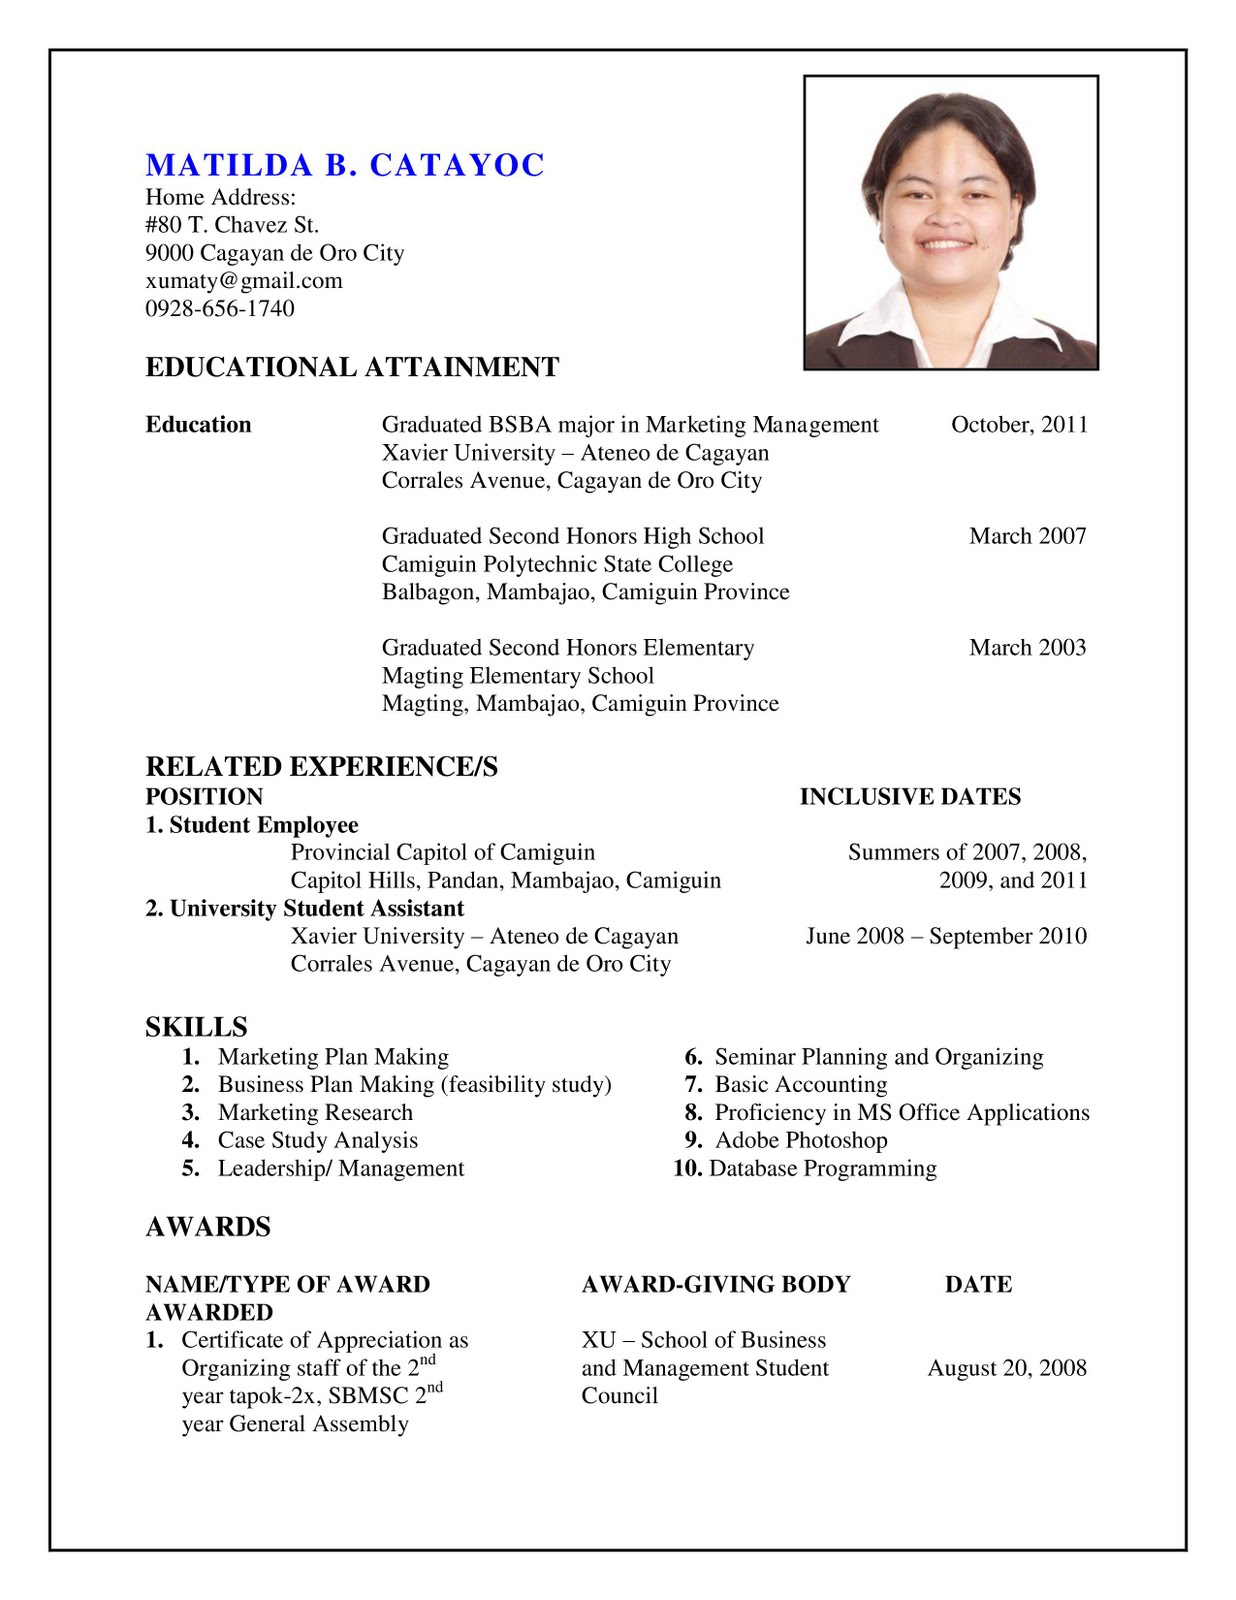 How To Write Updated Cv | Resume and Cover Letter Examples and ...